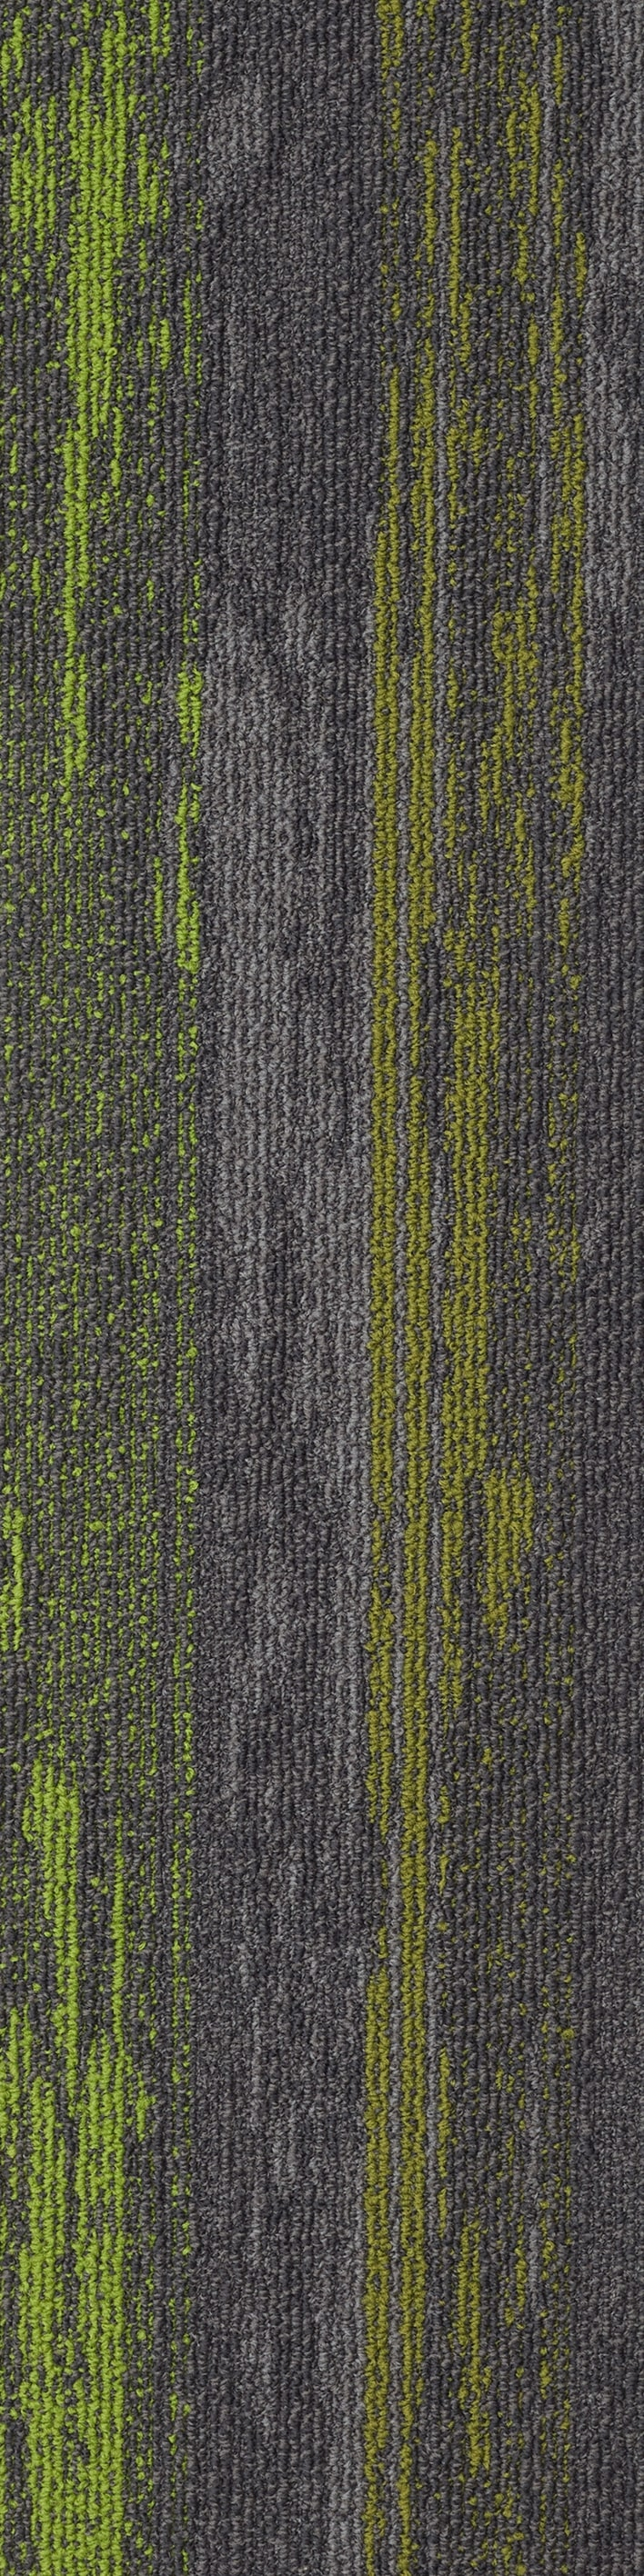 TR02_Pear Collection - Premierfloor Shift/Tropical